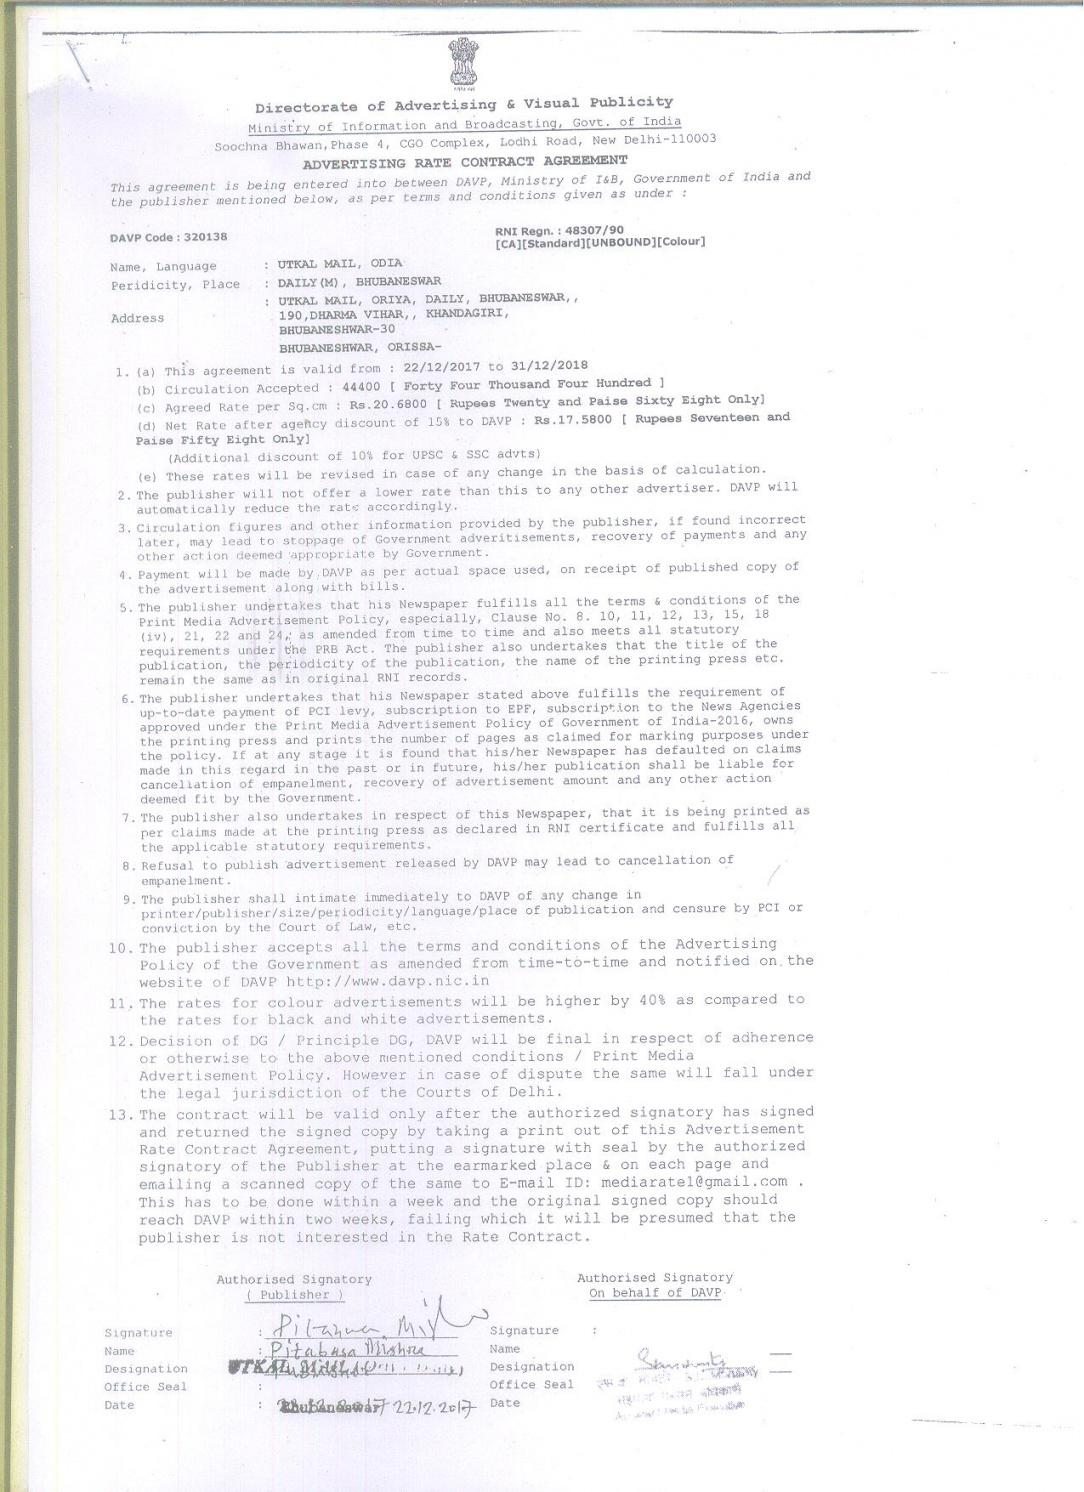 here the utkal mail: resurgence people's oriya & hindi daily davp advertising rate contract agreement